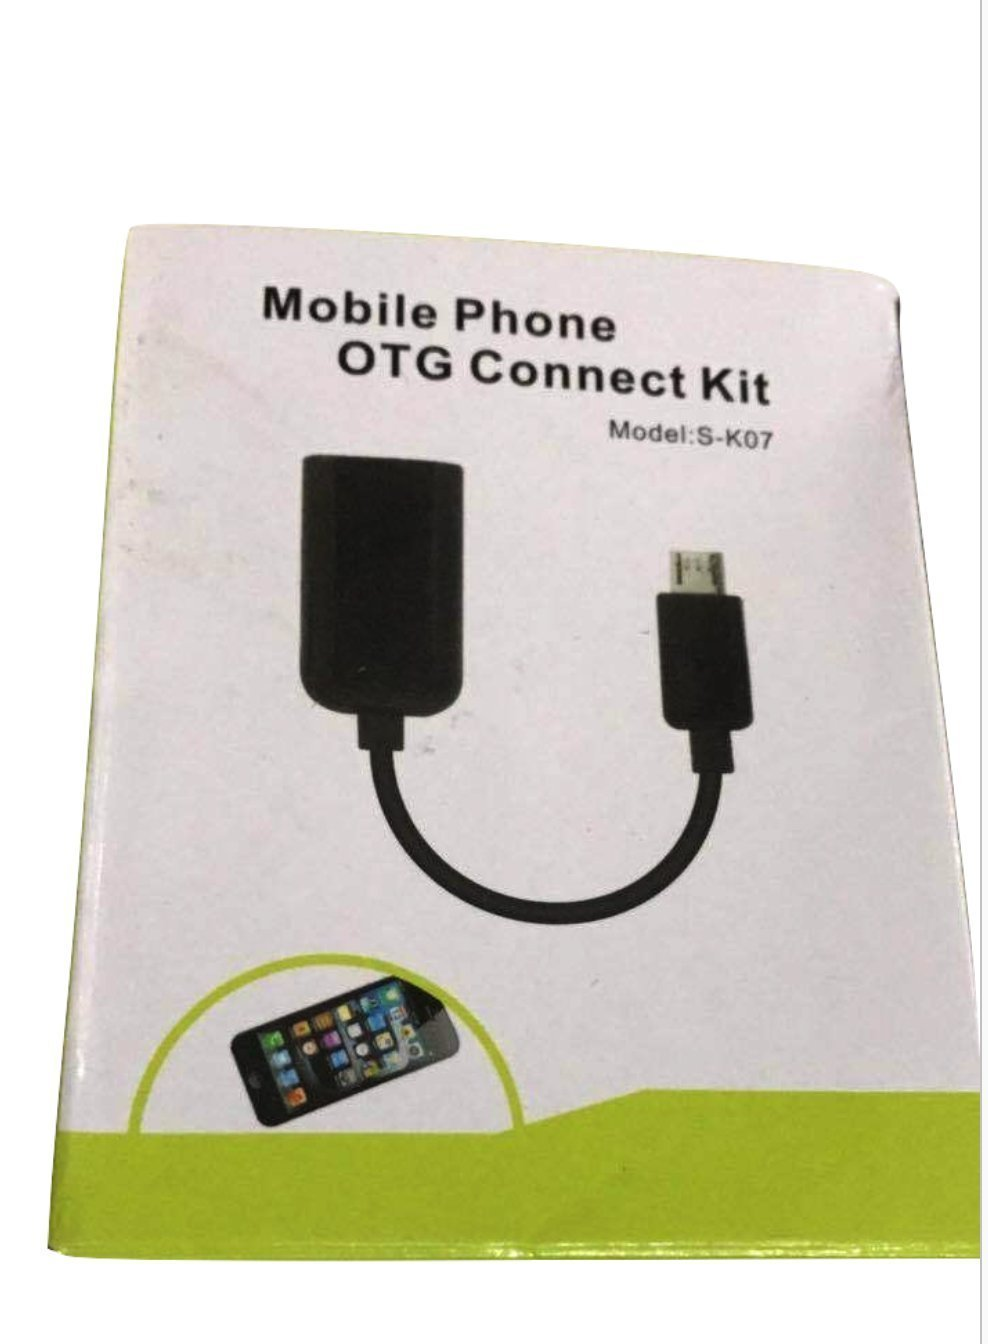 Buy Genericunbranded Micro Usb Otg Cable For Mobile Phone Connect Kit Android Supported Tablets And Mobiles Black Online At Low Prices In India Generic Reviews Ratings